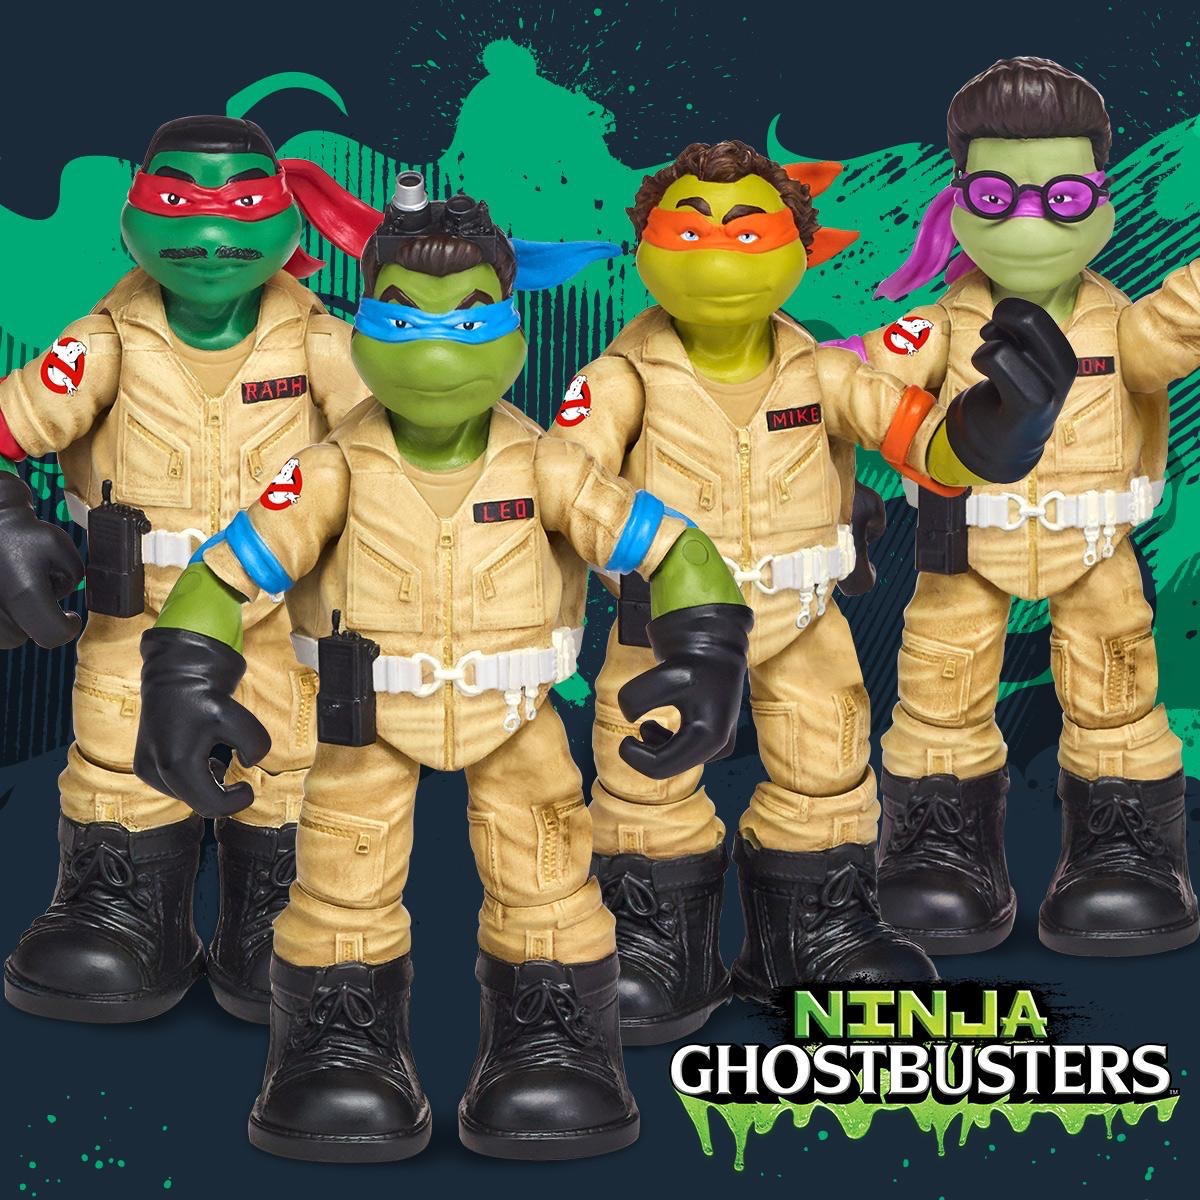 ninja turtles tmnt ghostbusters toys